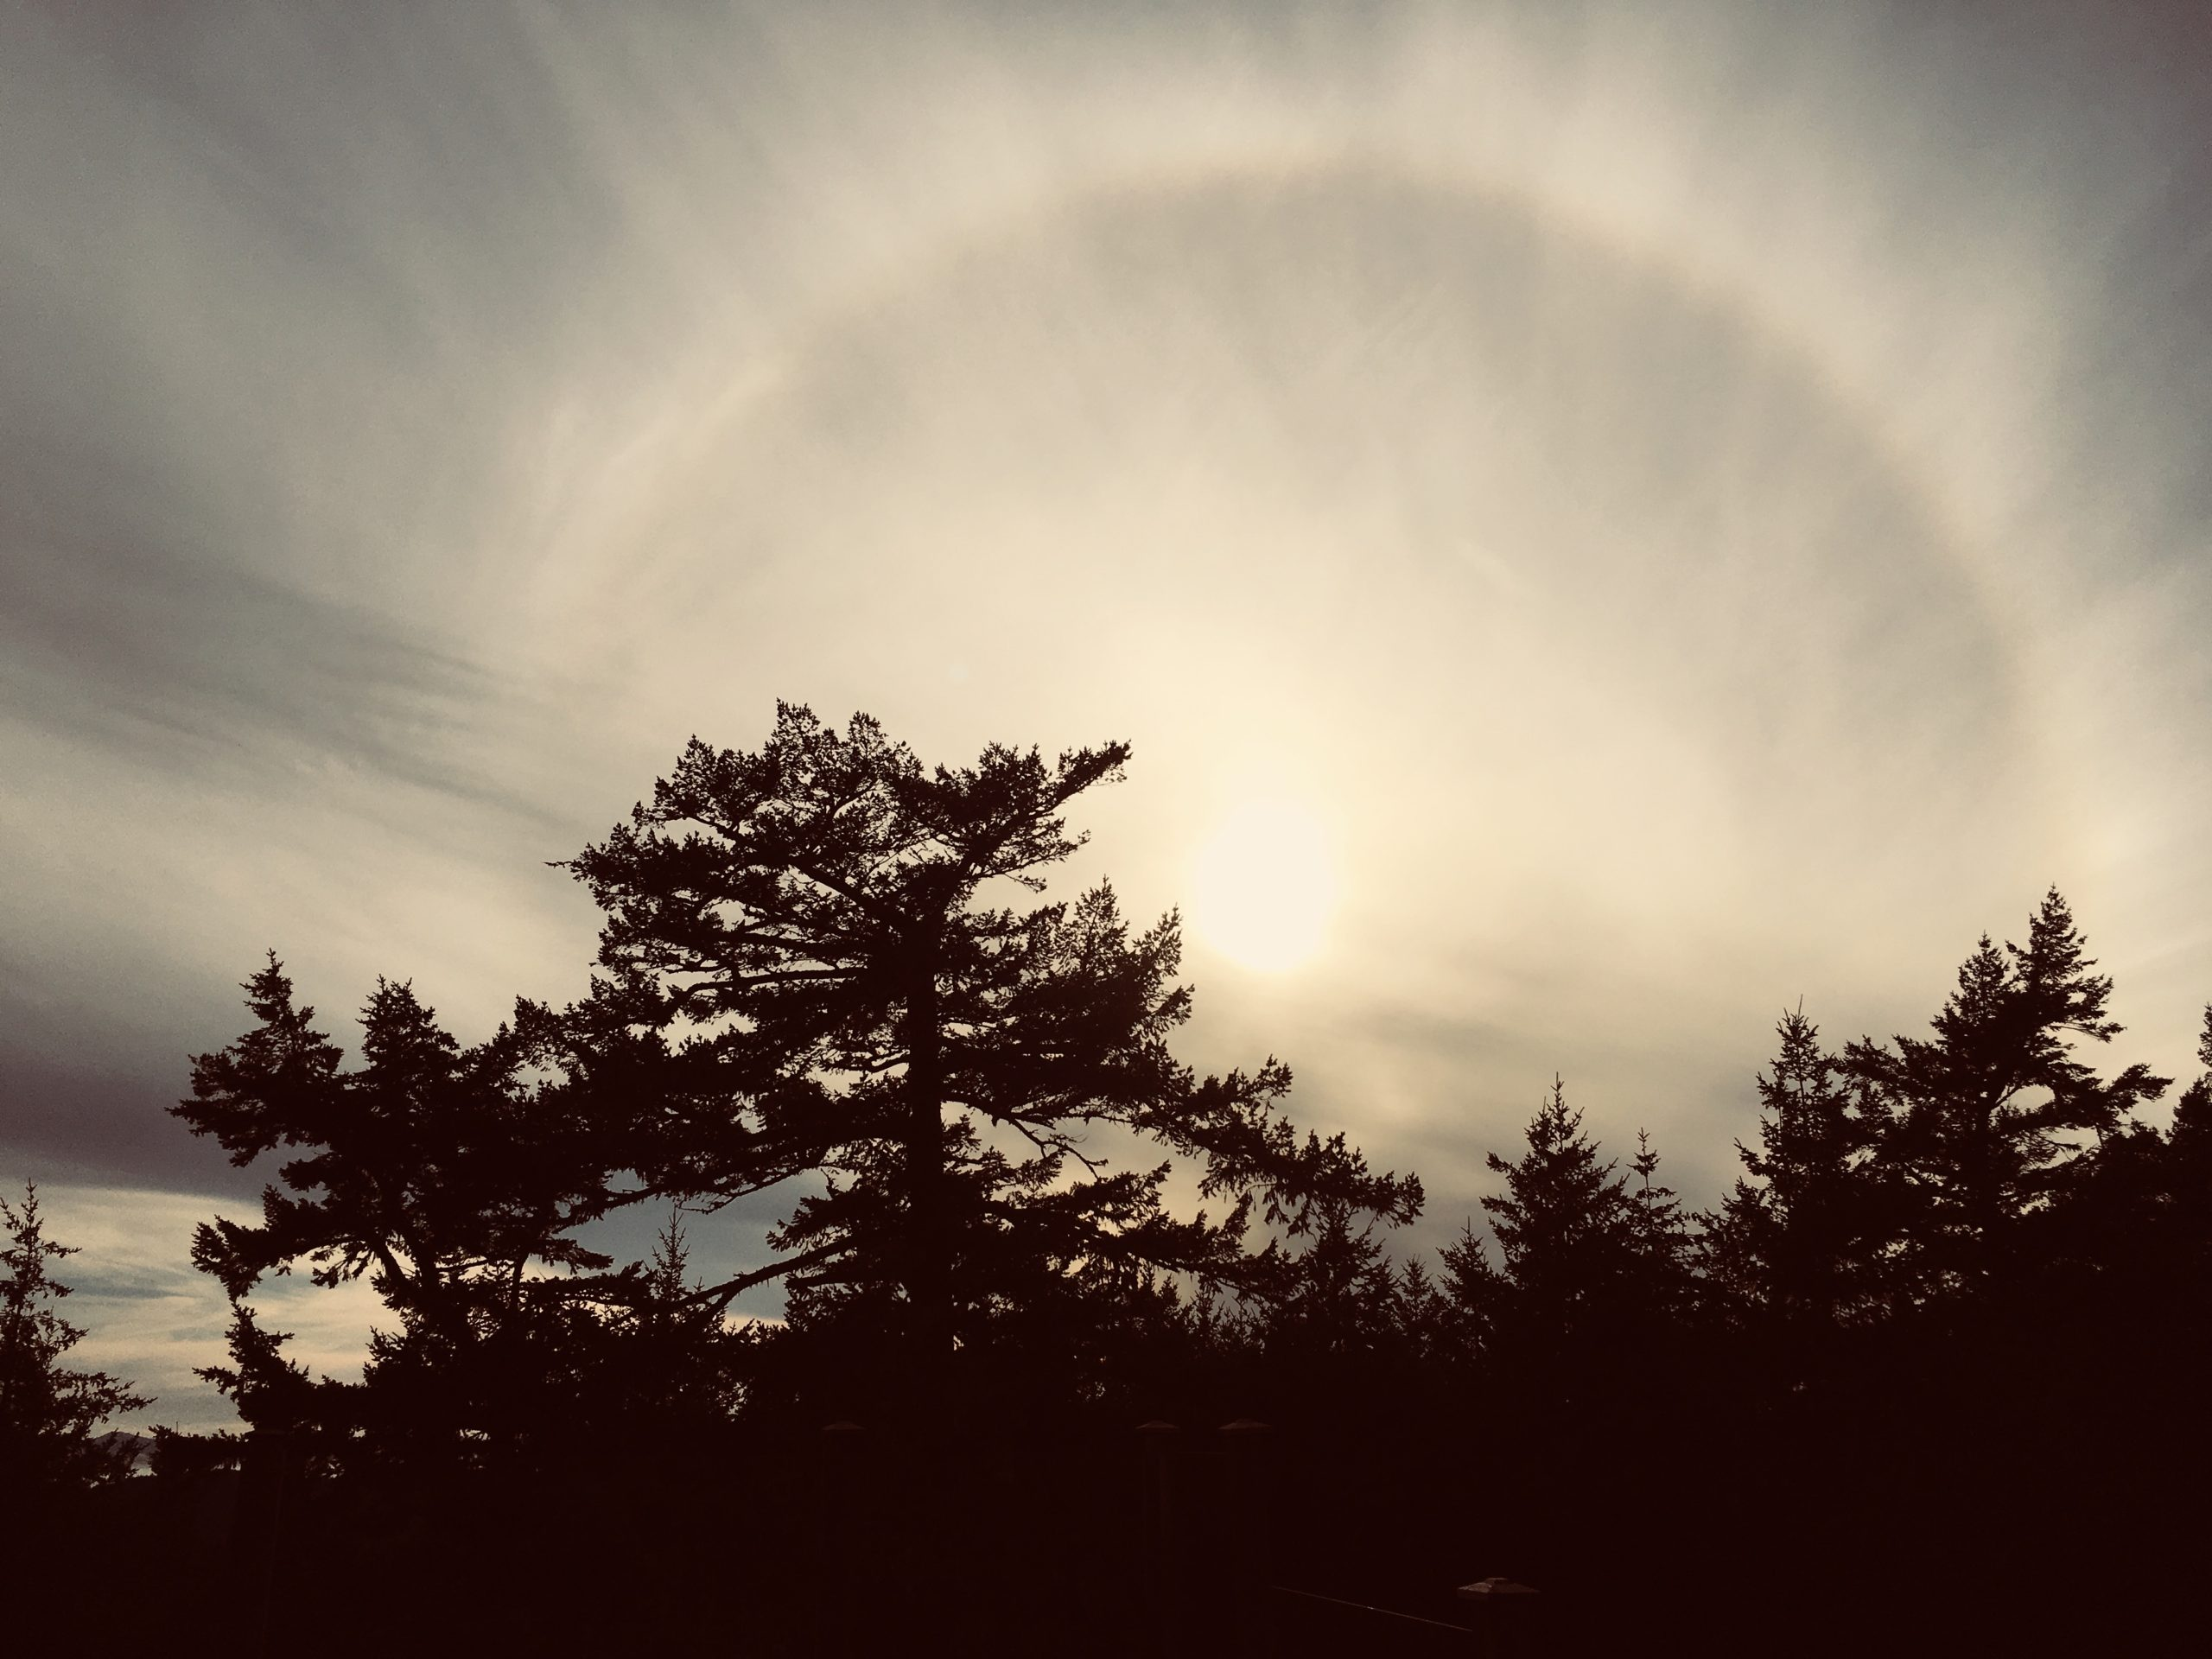 sun halo in the sky rising up above a shadowed forest of trees